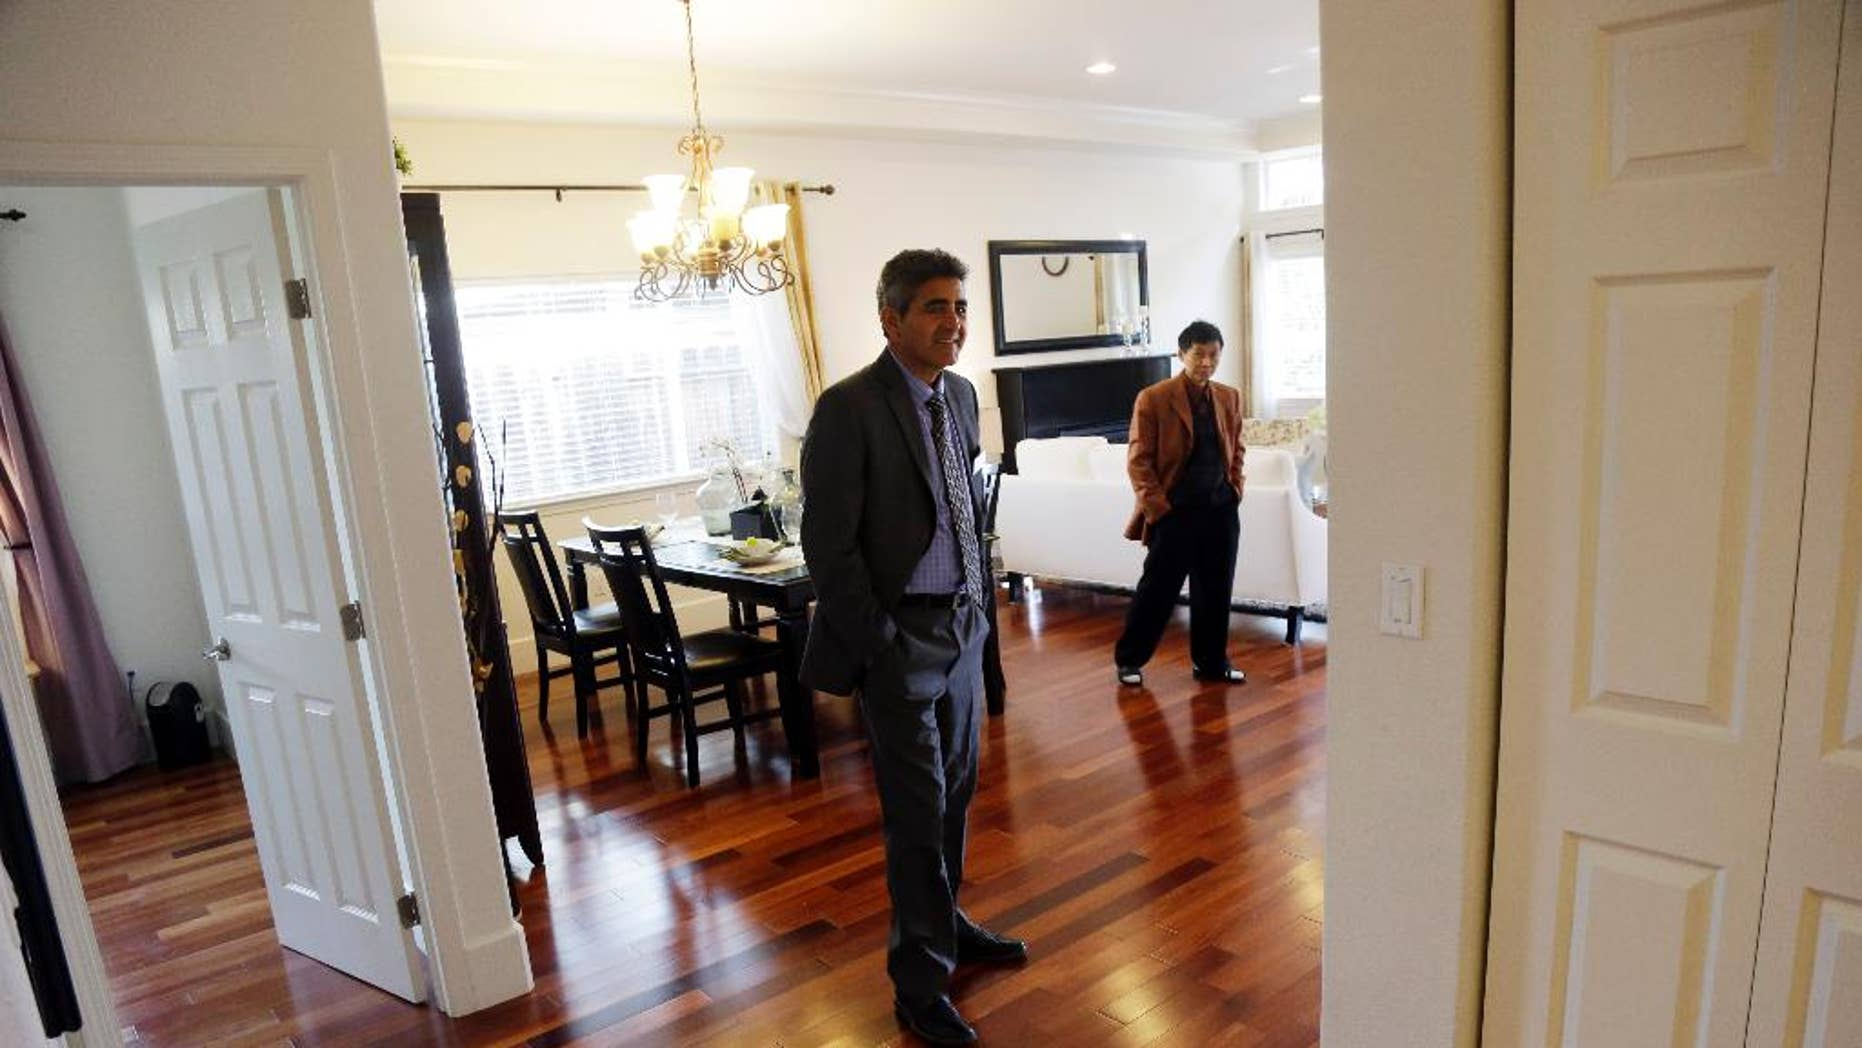 In this Jan. 8, 2015 photo, real estate agent Sam Golkar, left, tours a home being sold by fellow agent Frank Ruan, right, in Cupertino, Calif. The National Association of Realtors reports on sales of existing homes in December on Friday, Jan. 23, 2015. (AP Photo/Marcio Jose Sanchez)